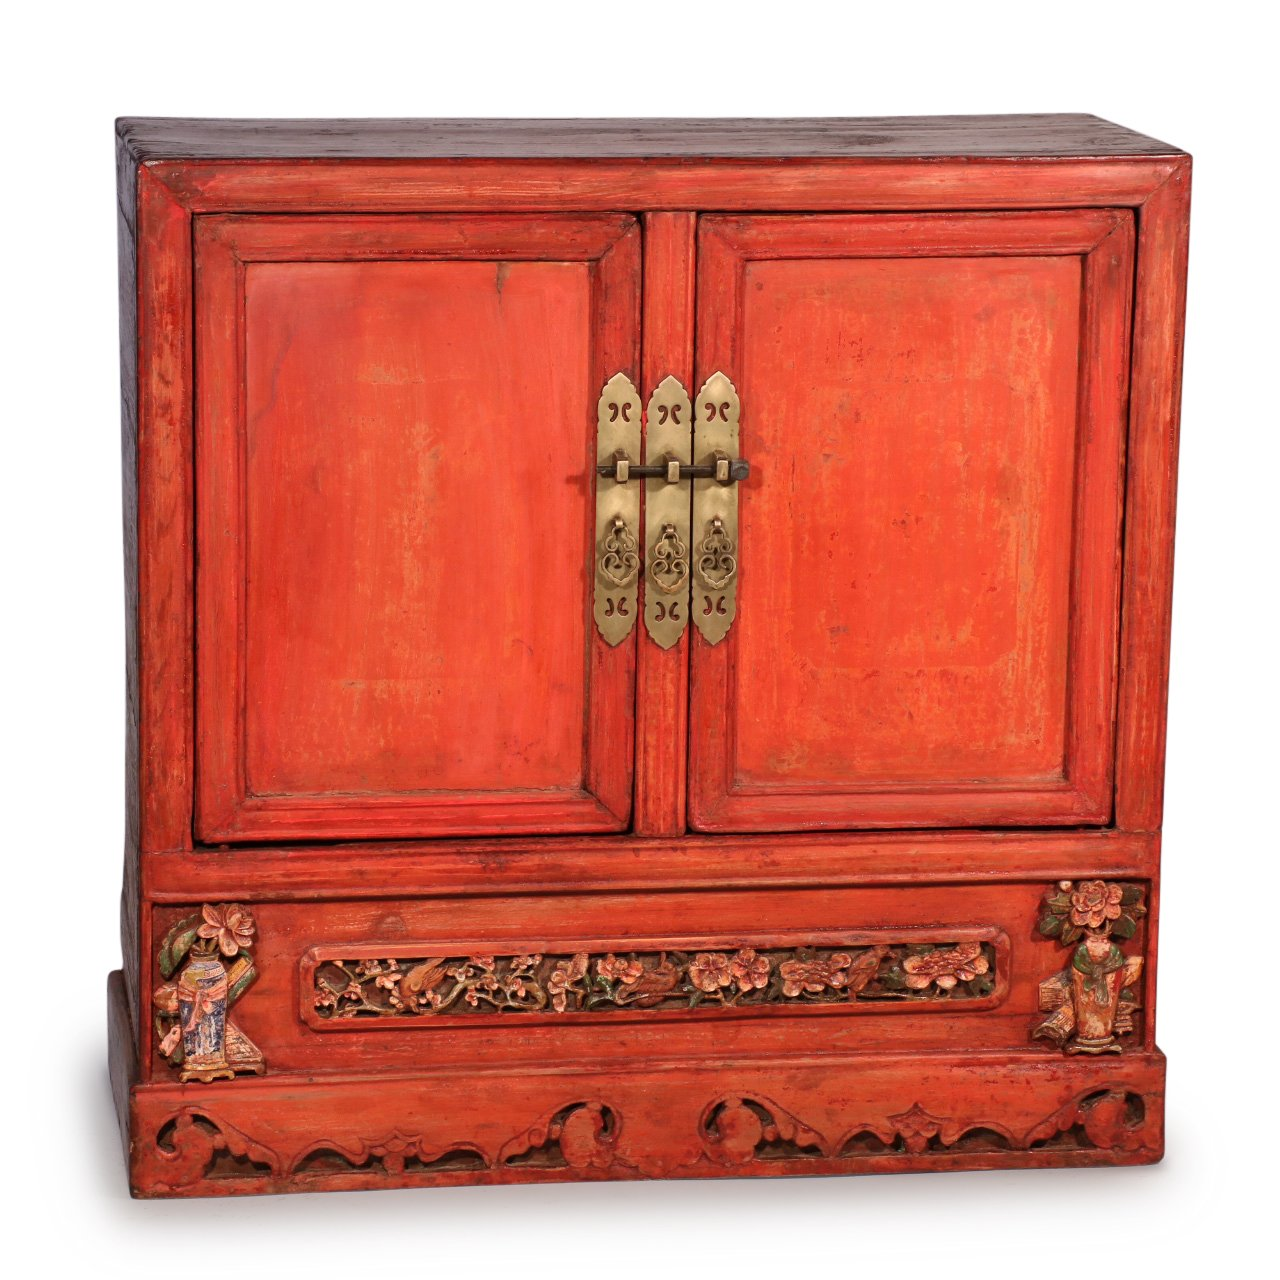 Red Lacquer Cabinet from Shanxi, China - 19thC | Indigo Oriental Antiques